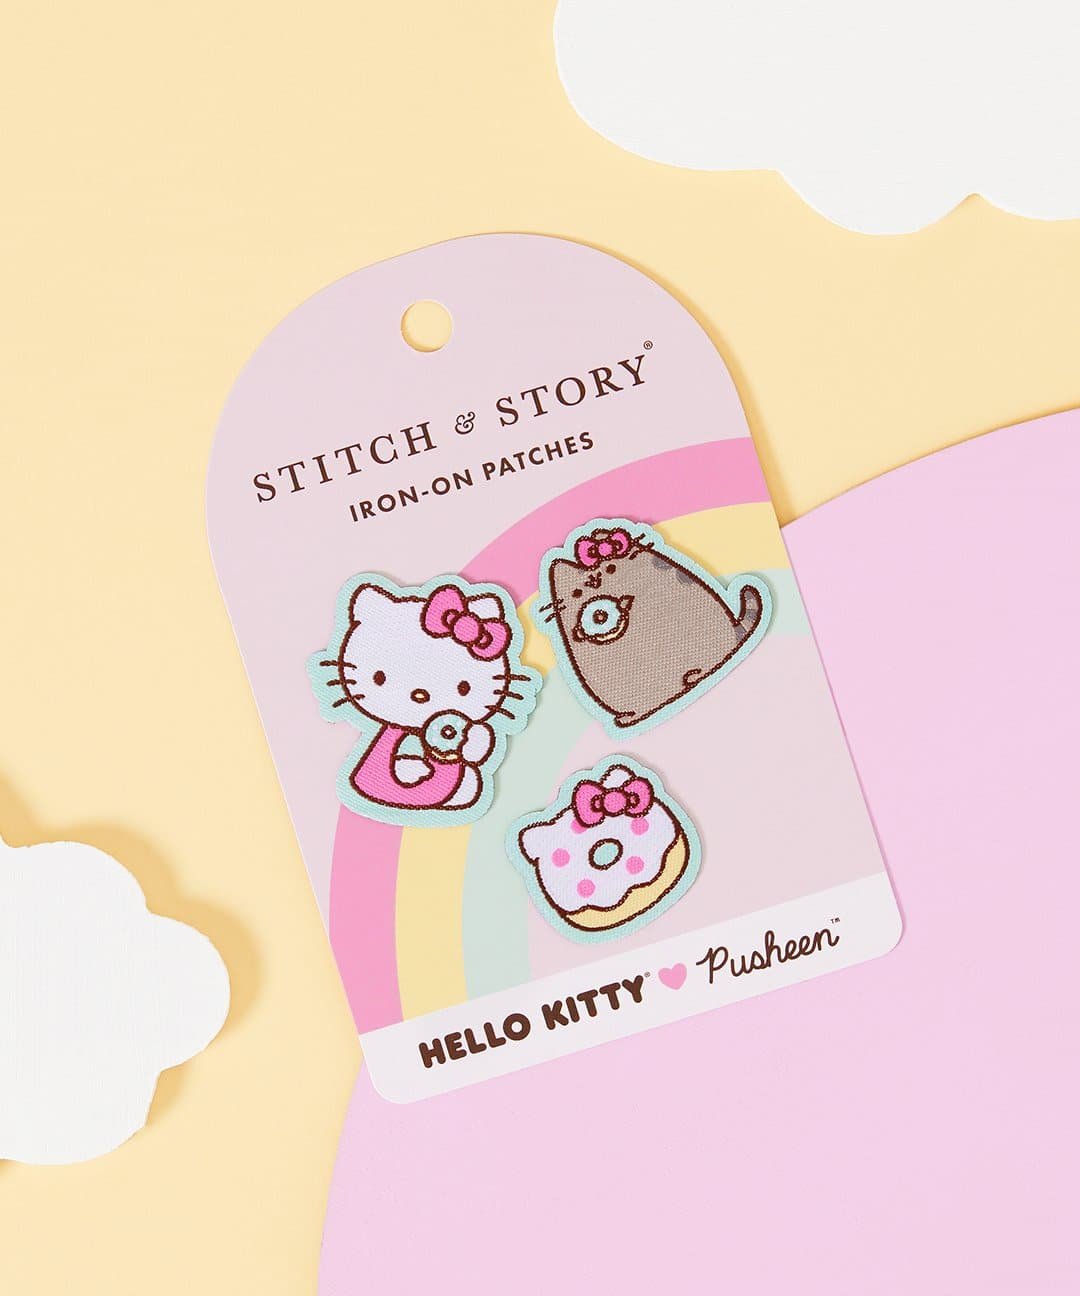 Hello Kitty and Pusheen celebrate their newfound friendship with a merch collection 22